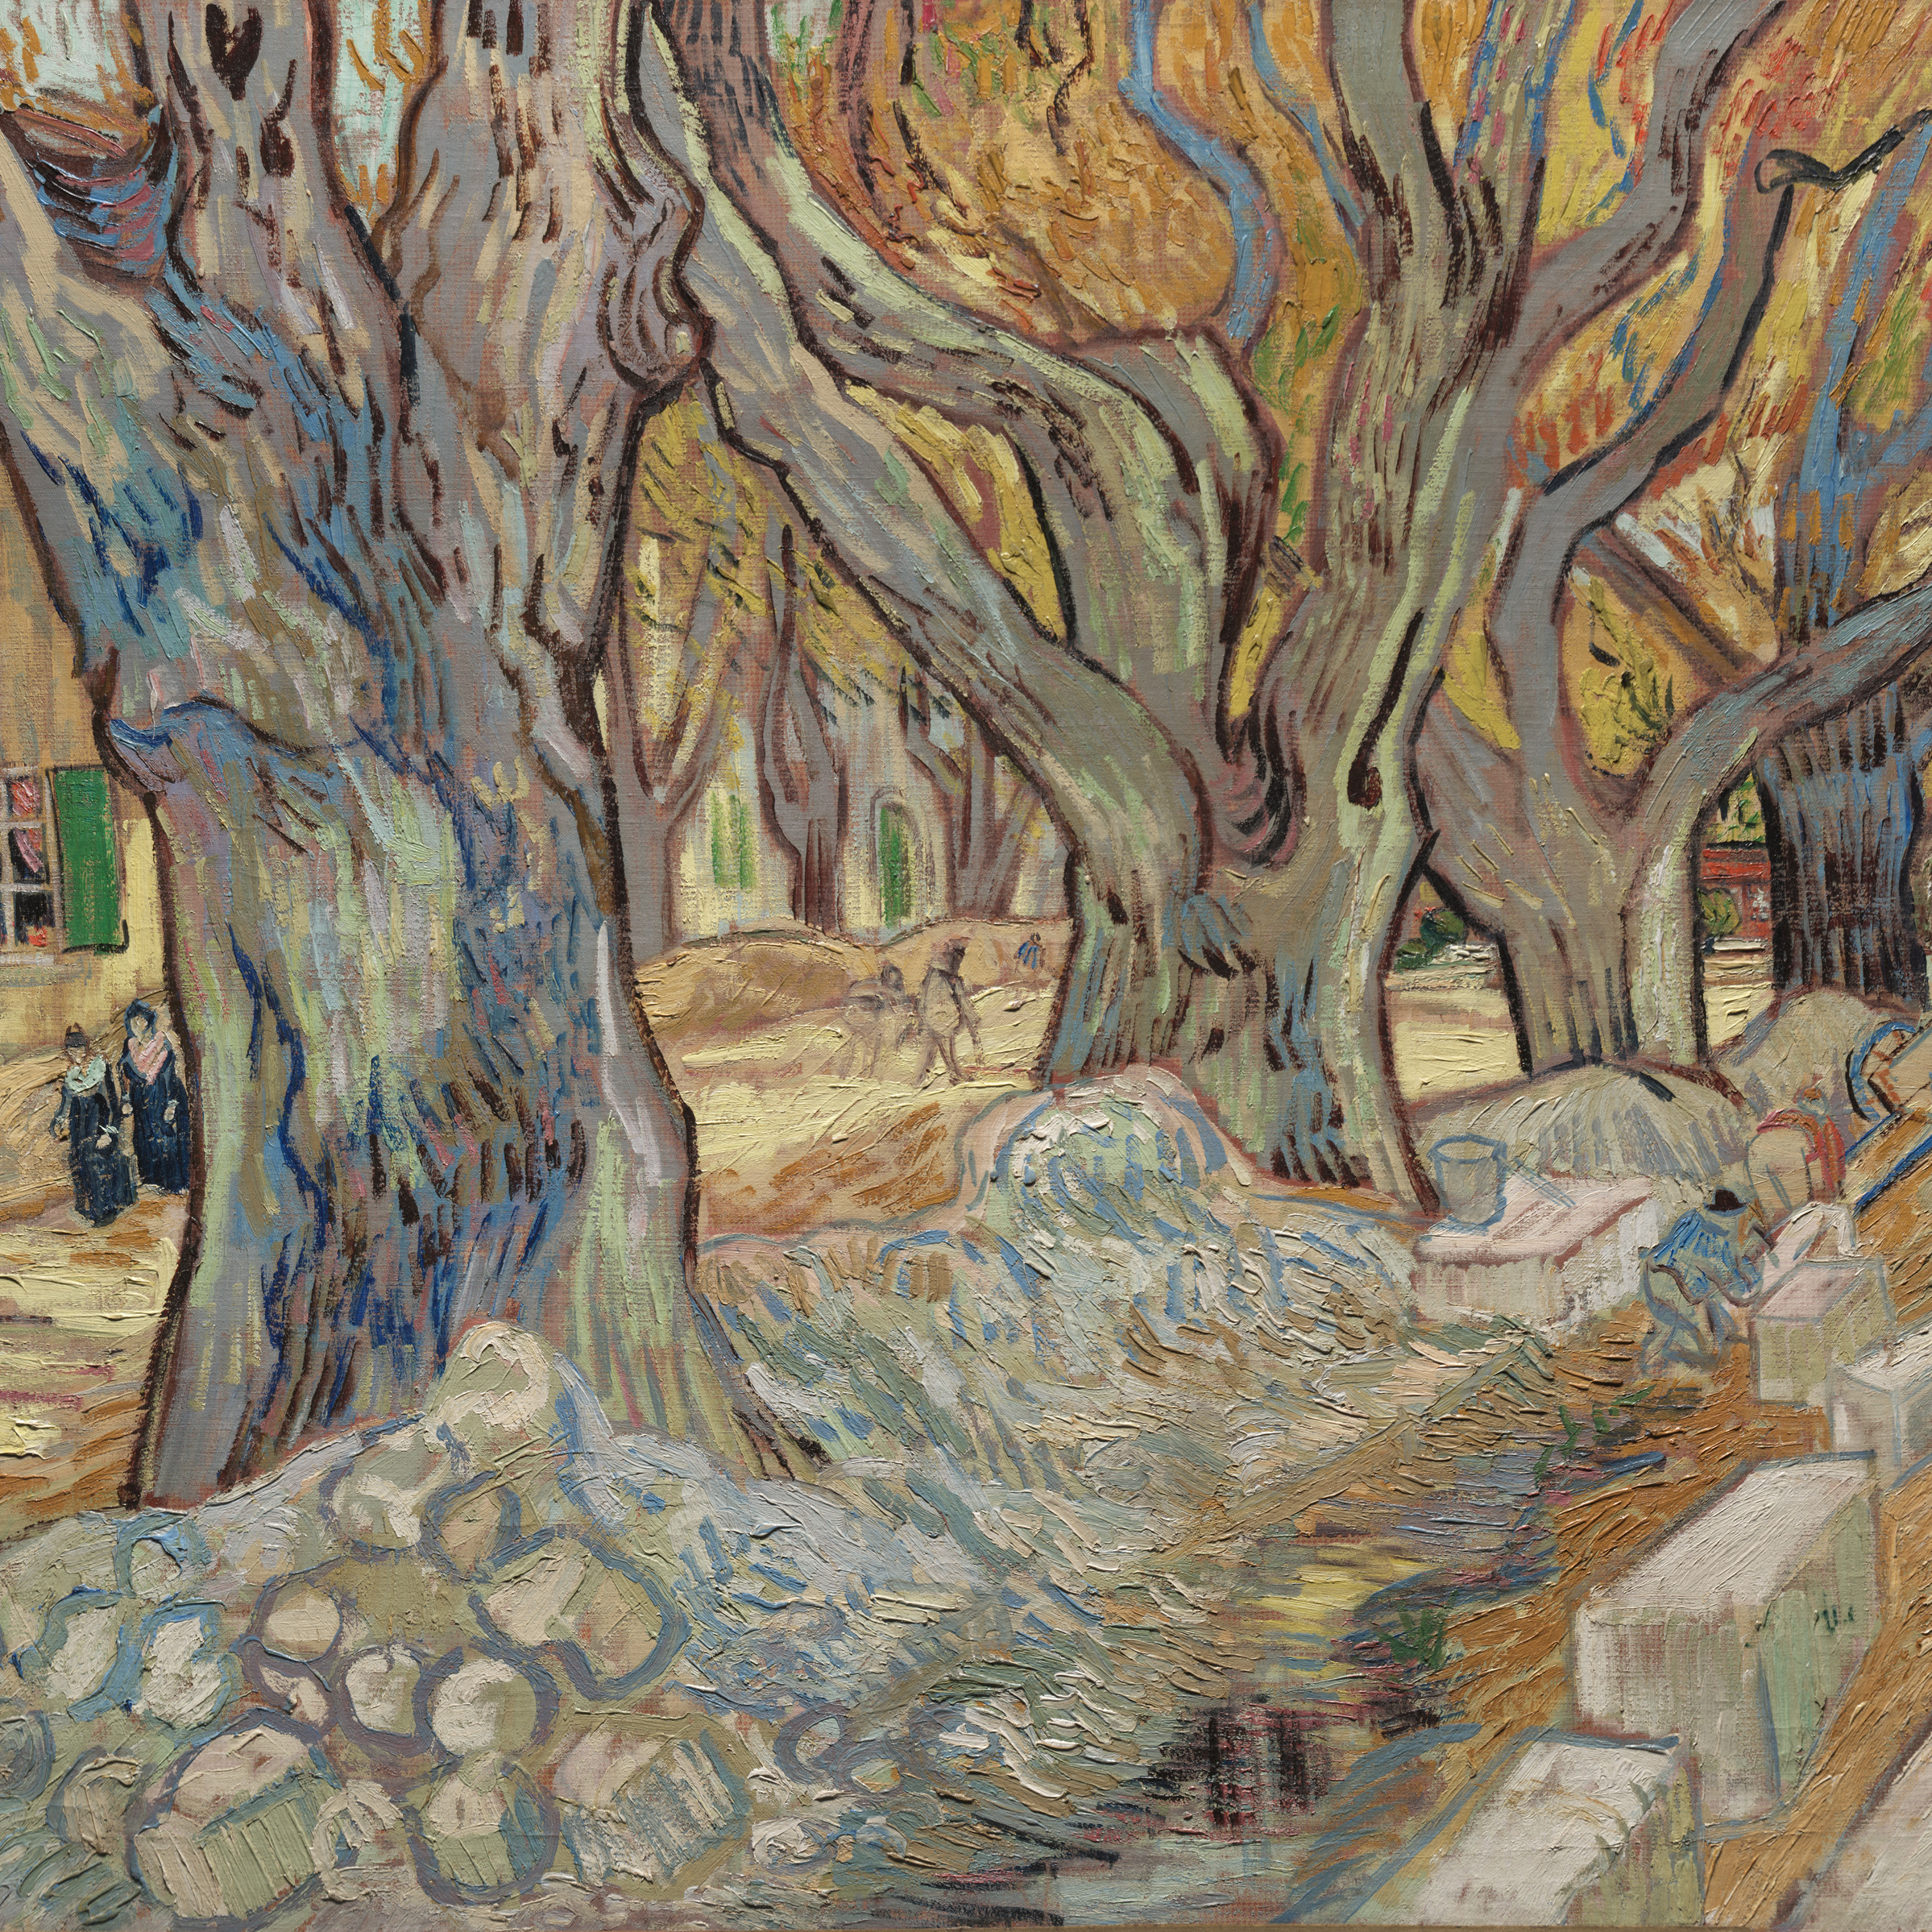 Vincent van Gogh, The Large Plane Trees (Road Menders at Saint-Re?my), 1889